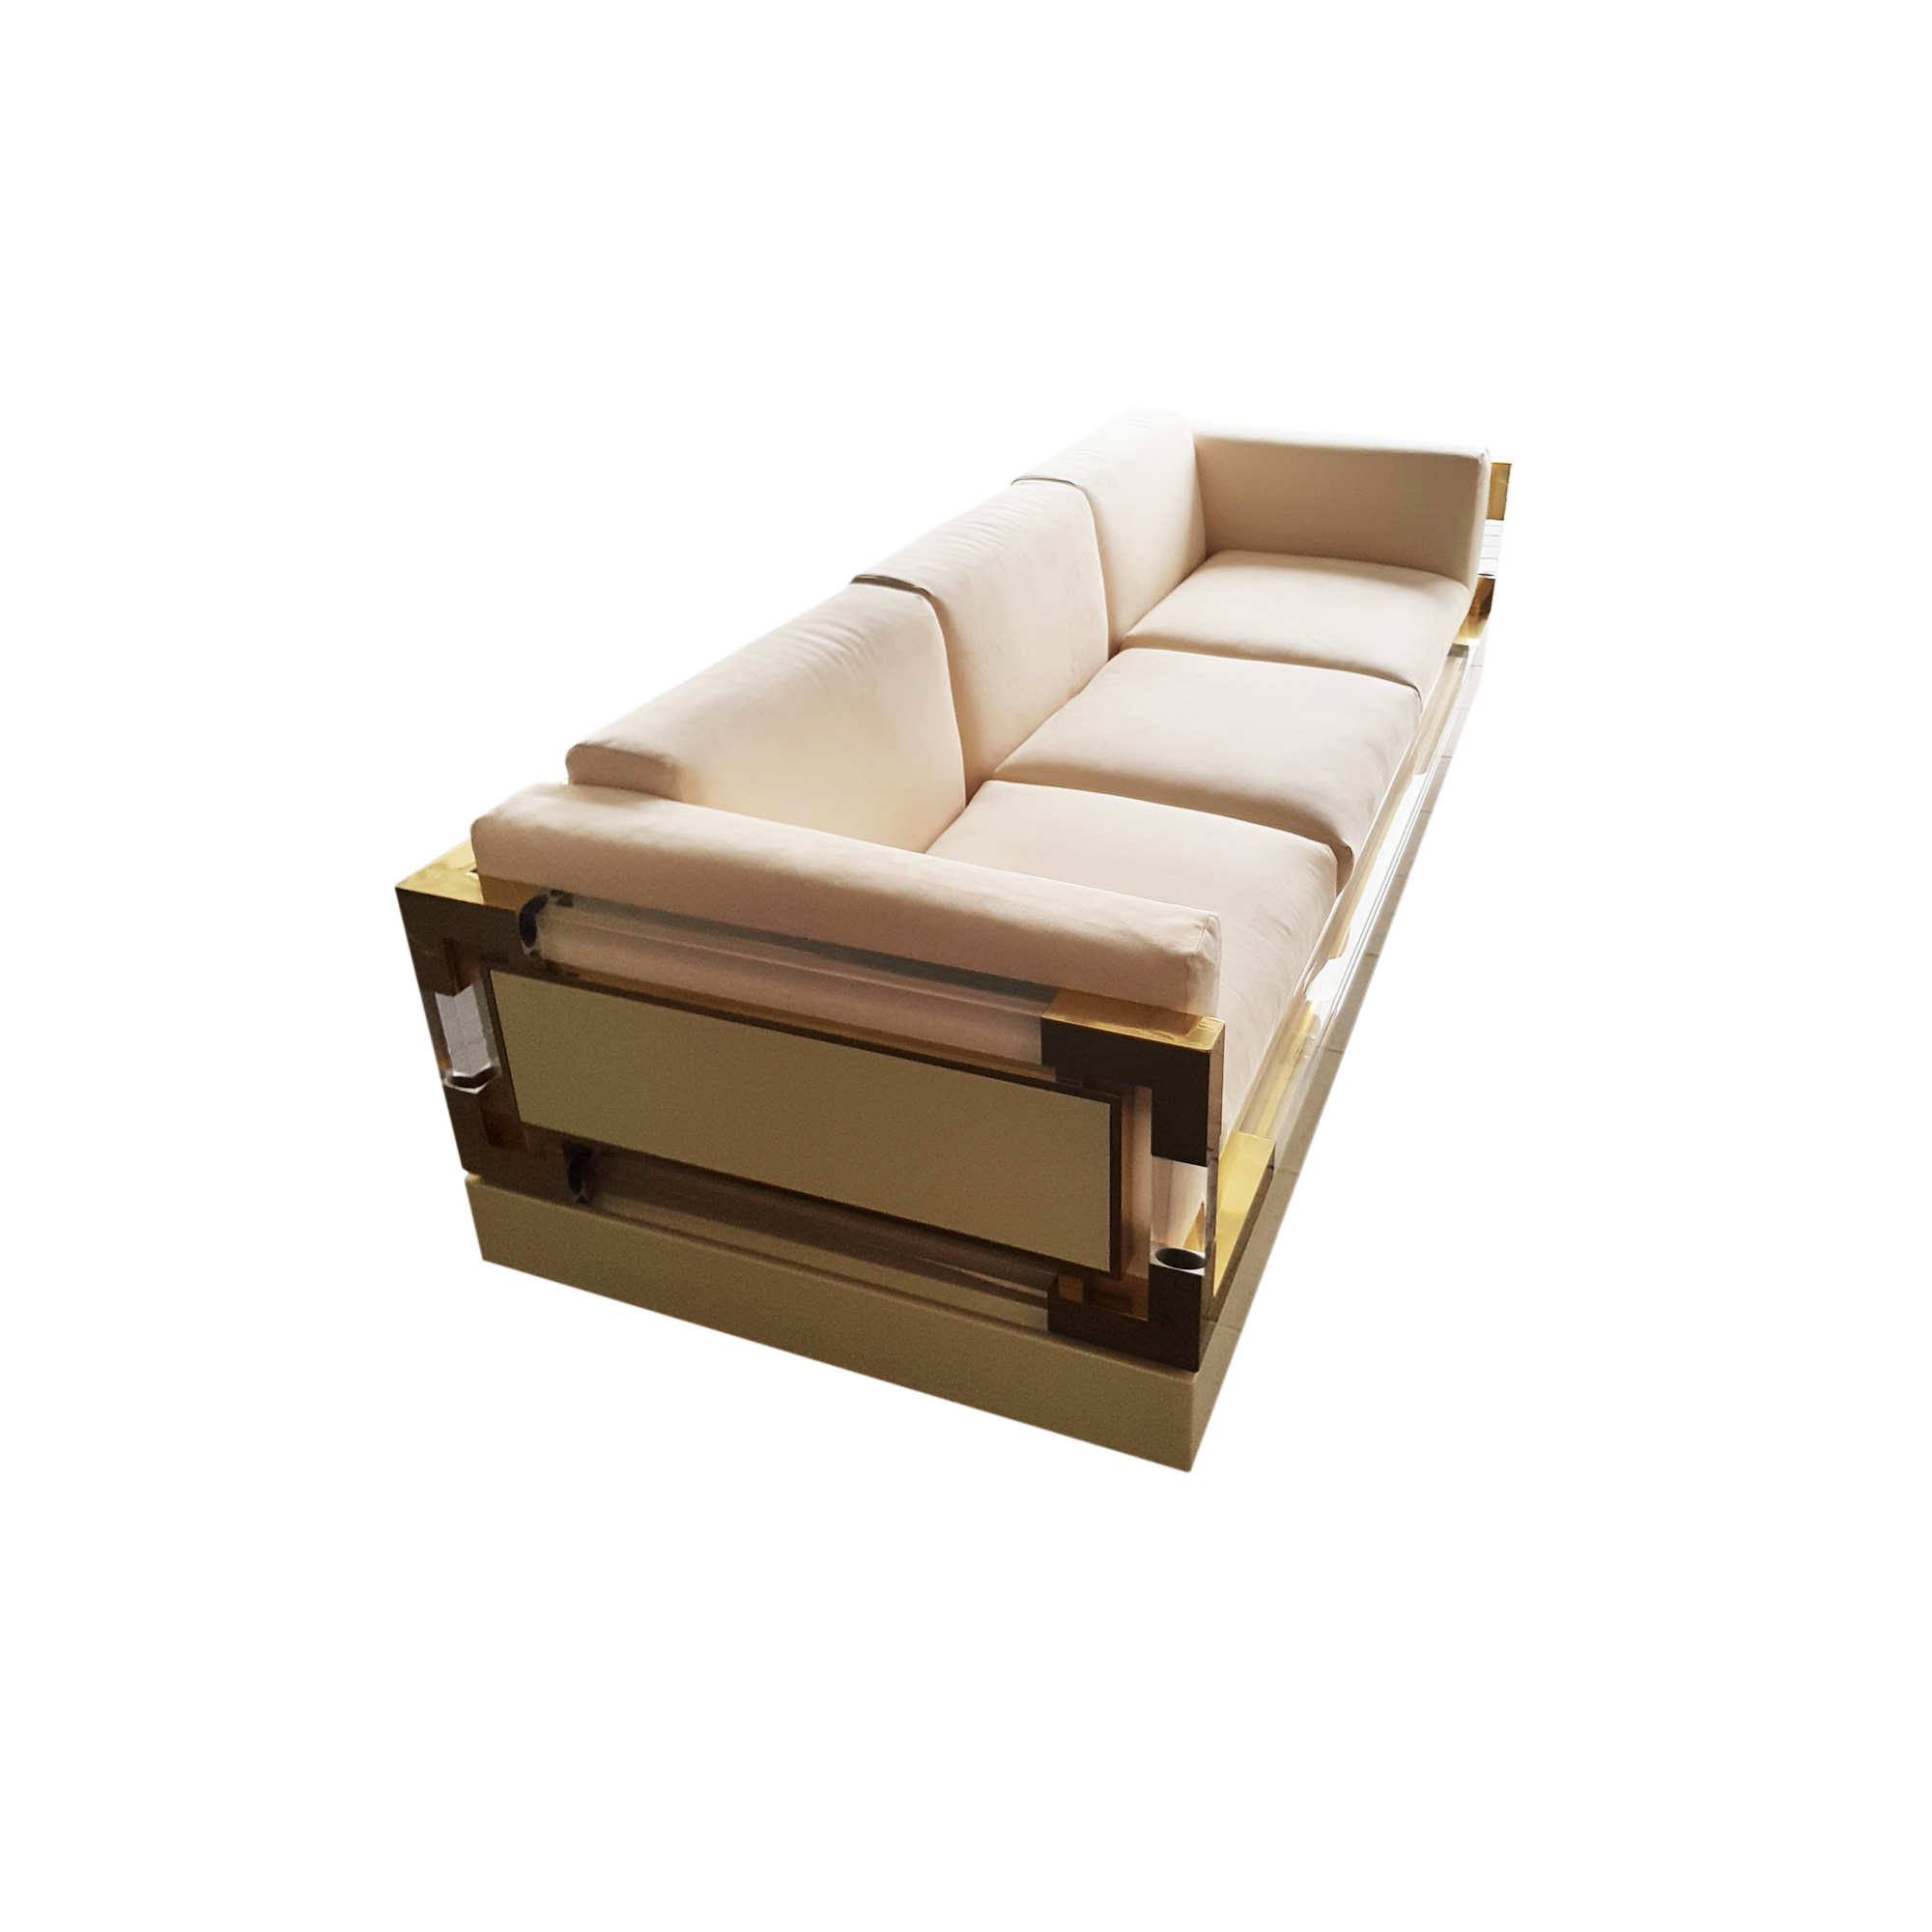 hollis jones three seater sofa